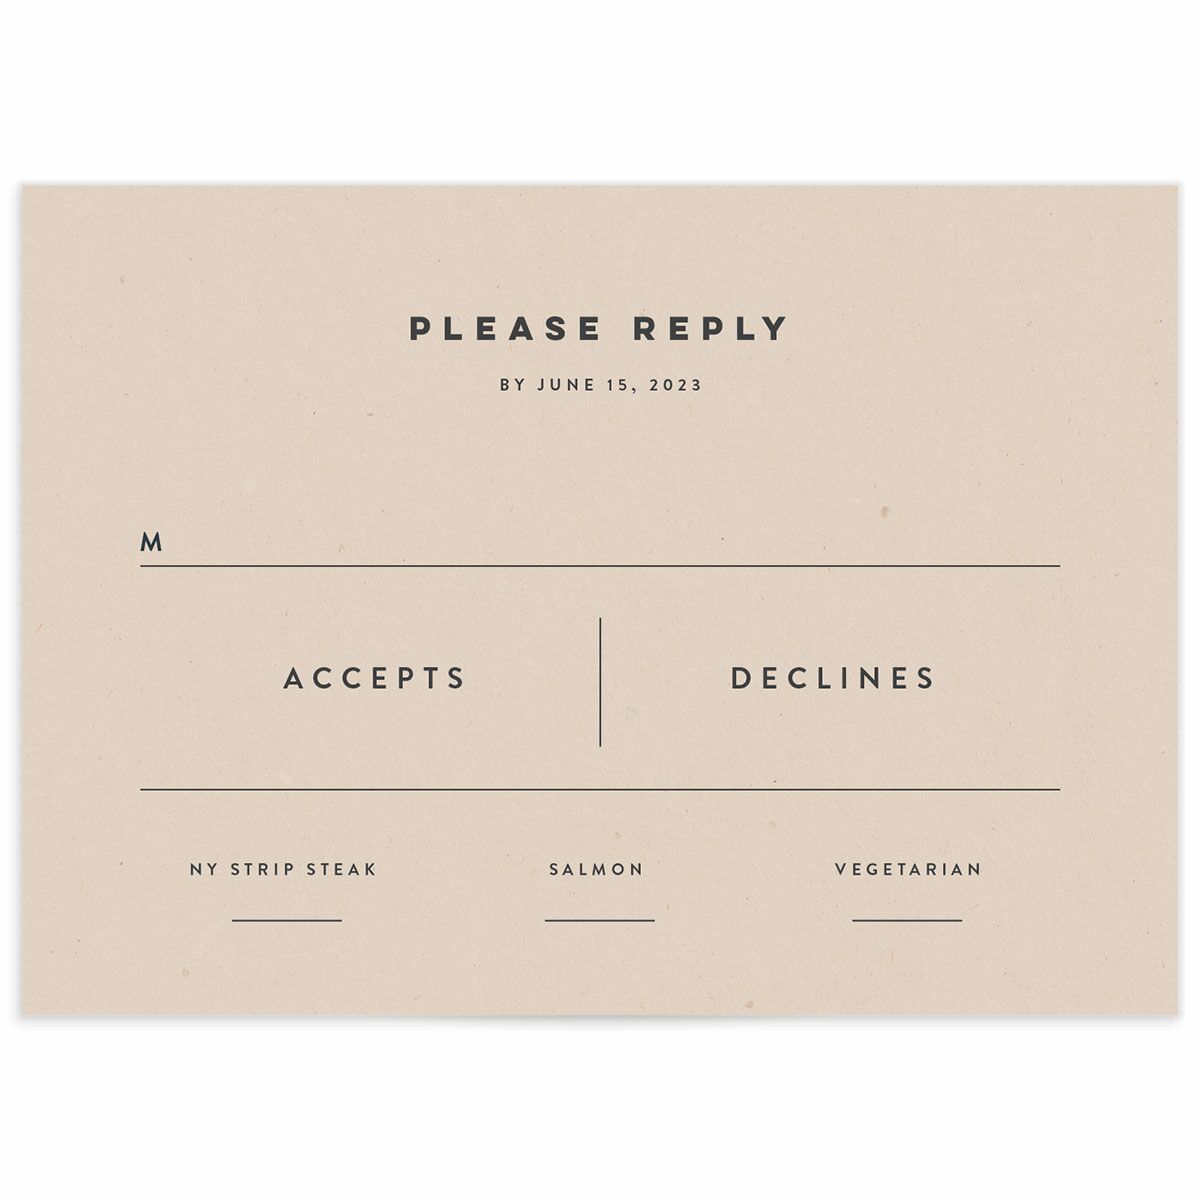 A Wedding Response Card from the Modern Palm Collection